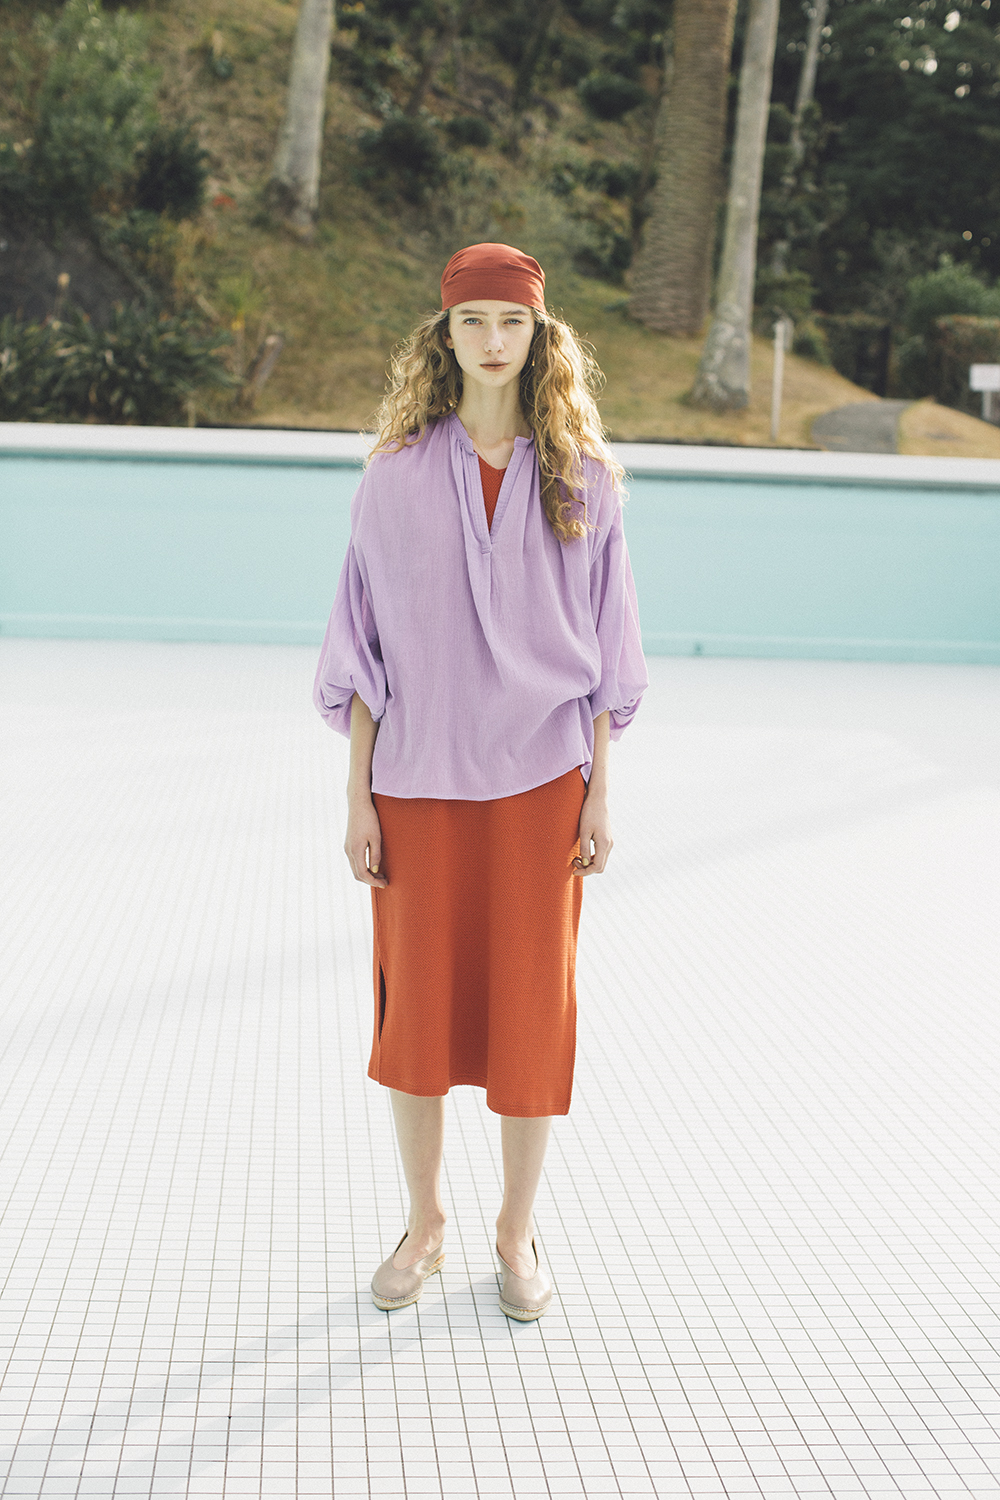 【WOMEN'S 2019 SS】- Glaring Color – LOOK アイテム